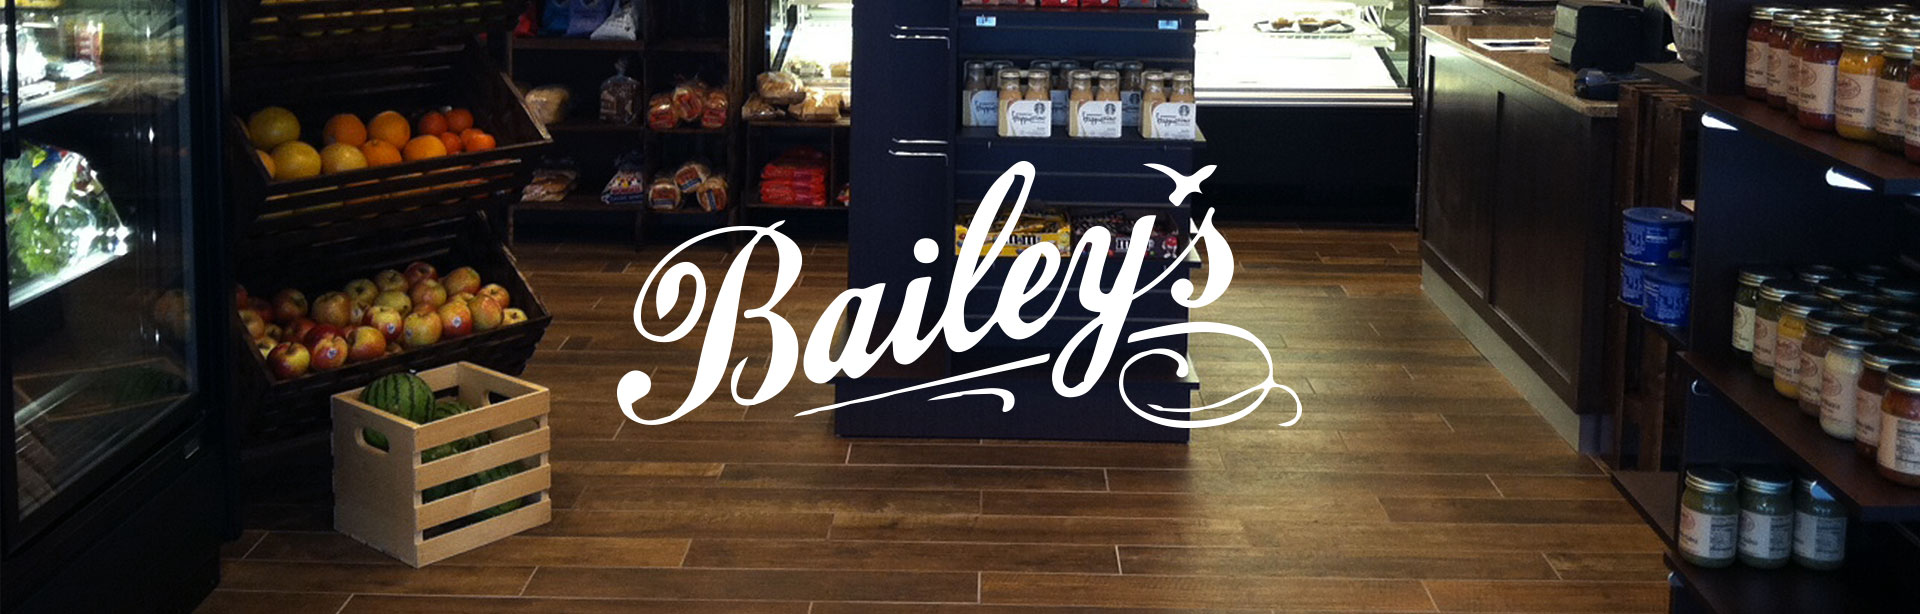 Bailey's Onsite Family-Owned Grocery Store